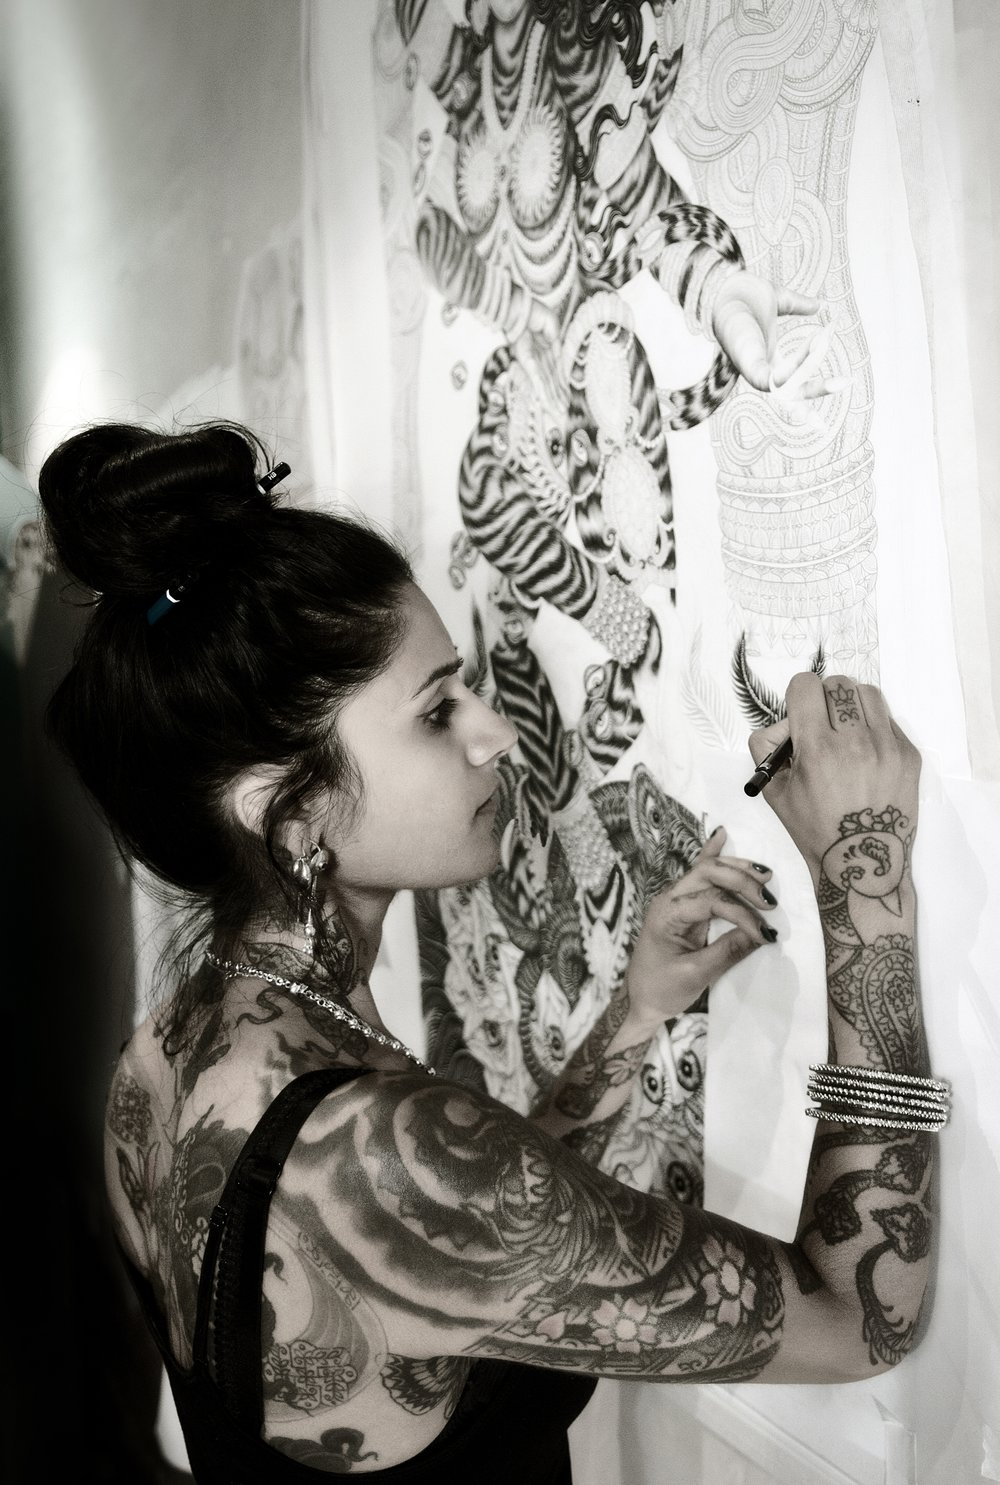 Saira Hunjan - Highly influenced by her Indian heritage and frequent trips to the country, Saira Hunjan's work often depicts images of nature, animals, and goddess figures. Her medium of choice is ink, which she has applied to both paper and skin. Known internationally as the Girl with the Golden Needle, Saira came to prominence in a career as a tattooist whilst studying fine art. This experience helped her refine and transform her visual language for her creative practice.Saira's connection to animals continues to be a great inspiration in her work. A proportion of the profits made by selling Saira's art will go to a charity in support of animals in Rajasthan, India. The work done by Tolfa India is very close to Saira's heart, as they provide shelter and medical support for animals in need.www.sairahunjan.comwww.tolfa.org.uk